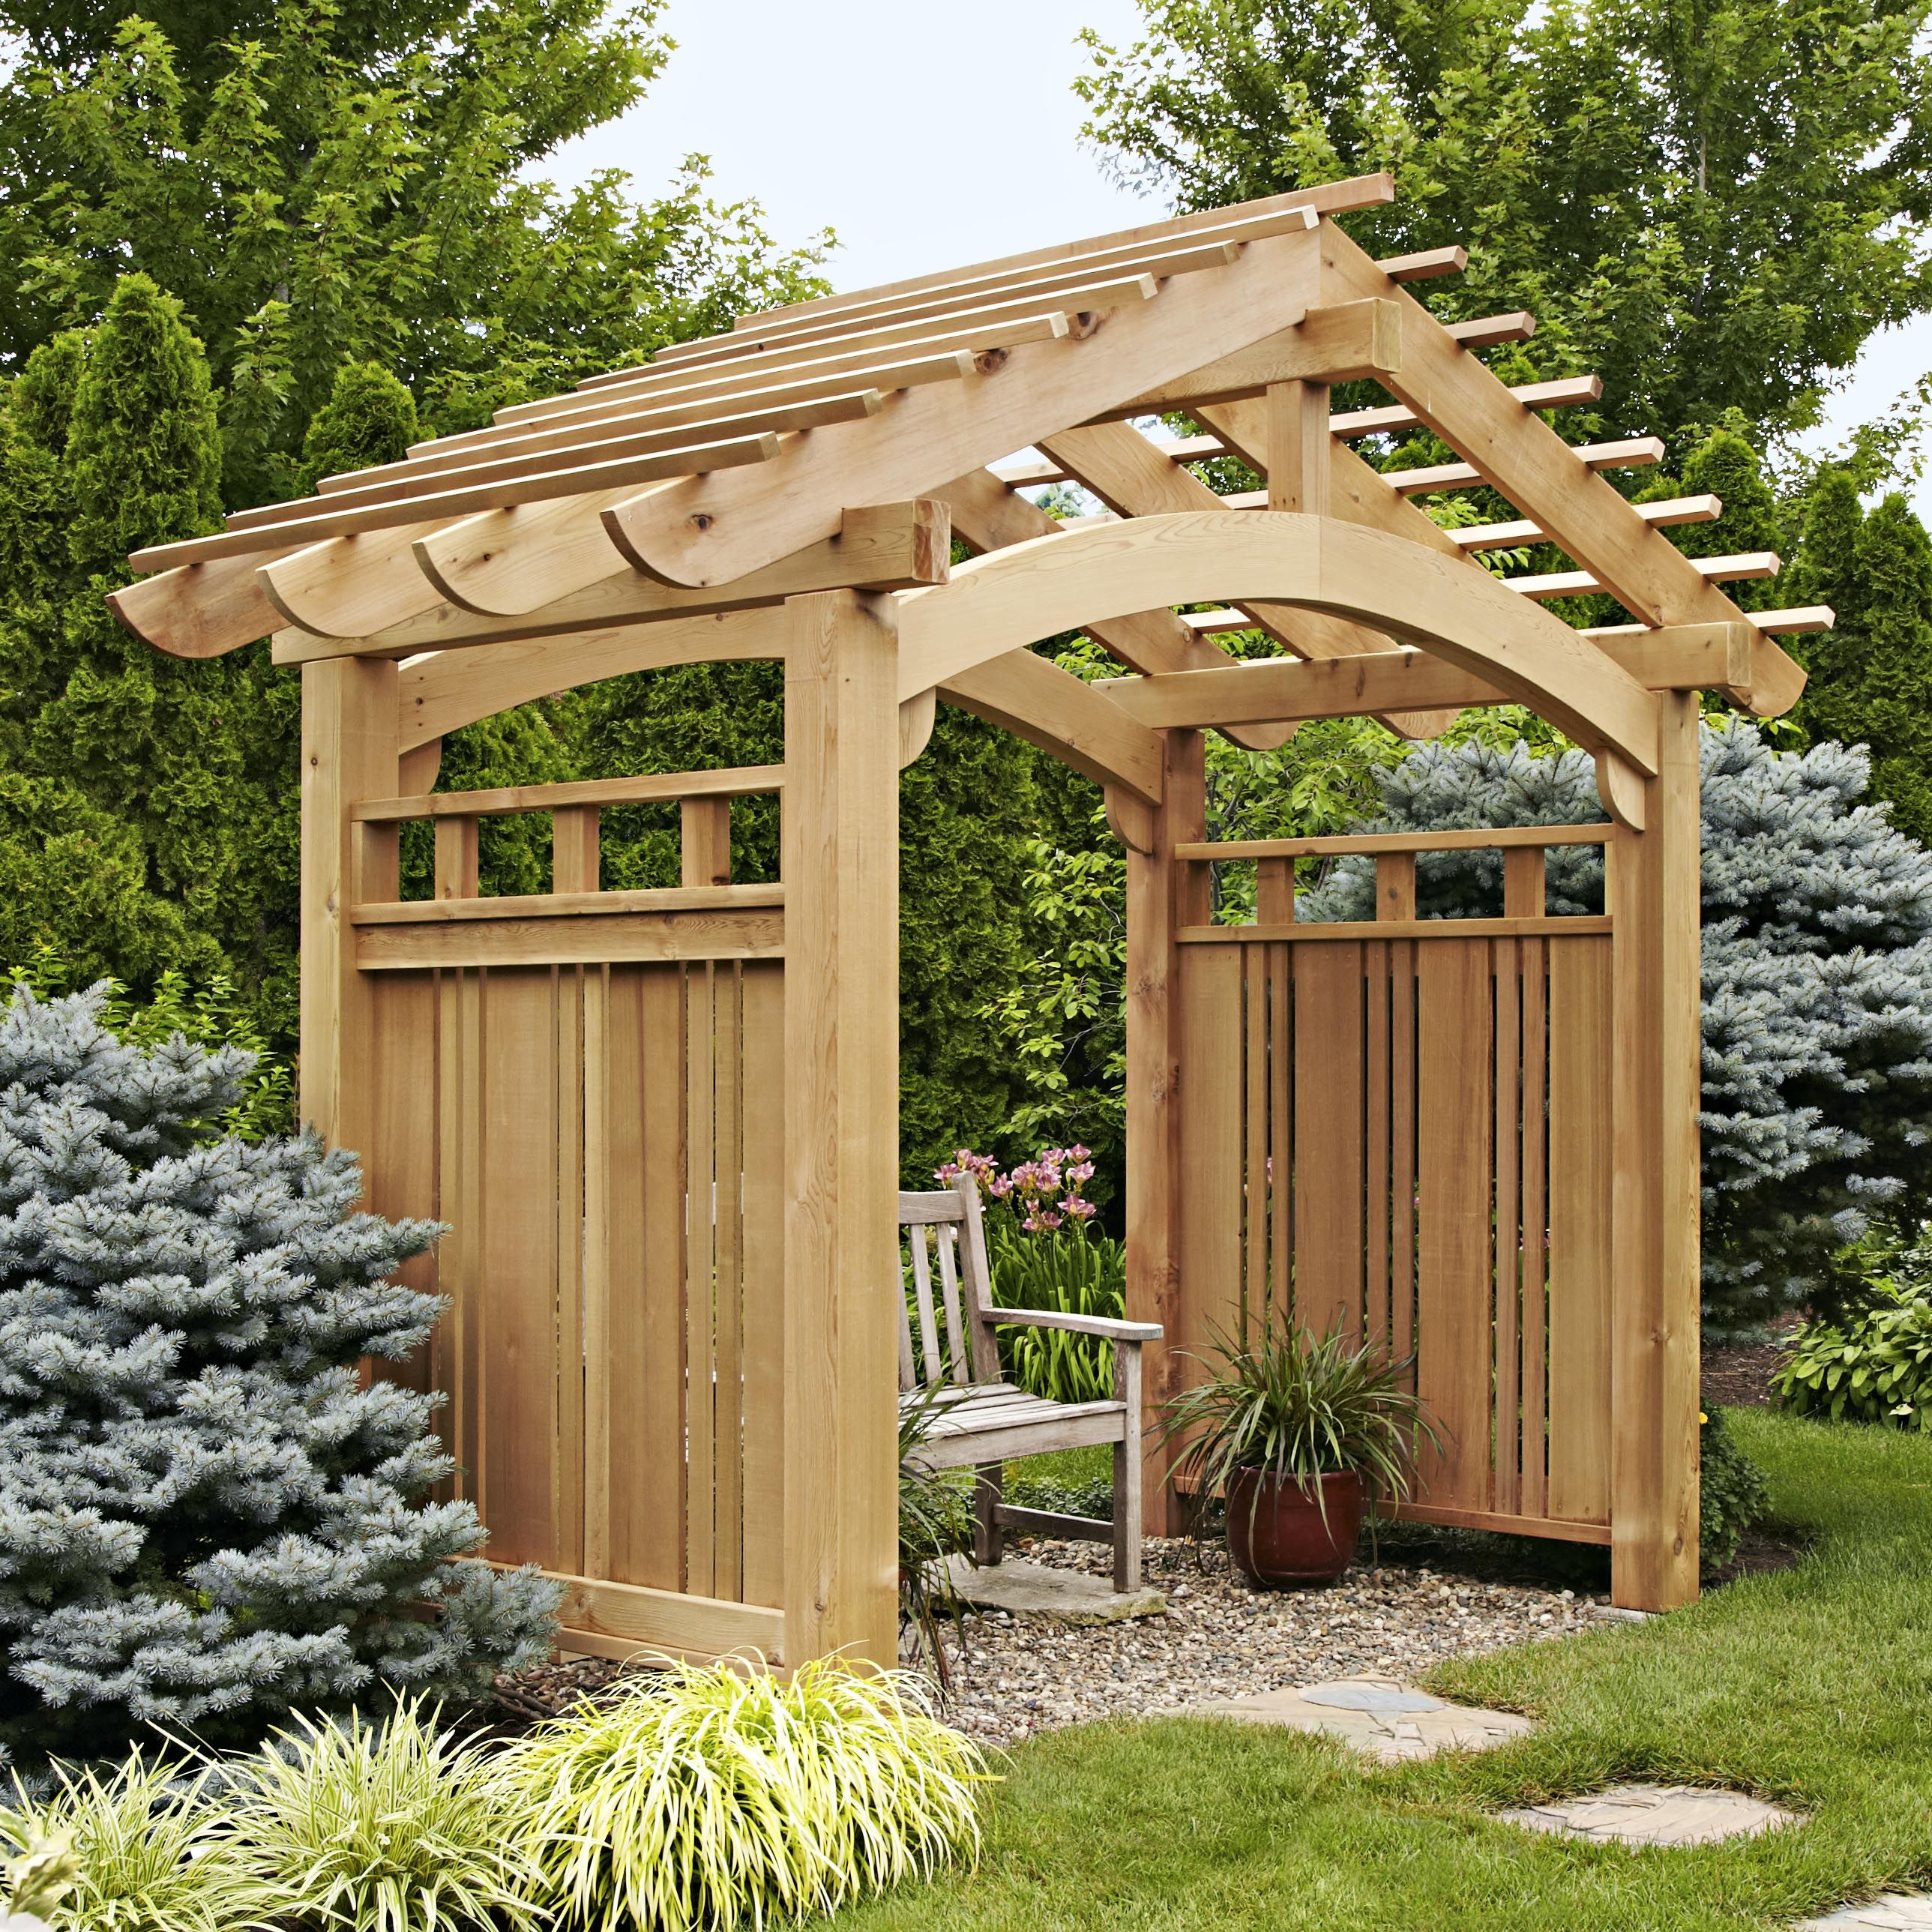 Attractive Arbor Trellis Ideas Part - 6: Arching Garden Arbor Woodworking Plan, Outdoor Backyard Structures · Arbors  TrellisTrellis IdeasPorch ...